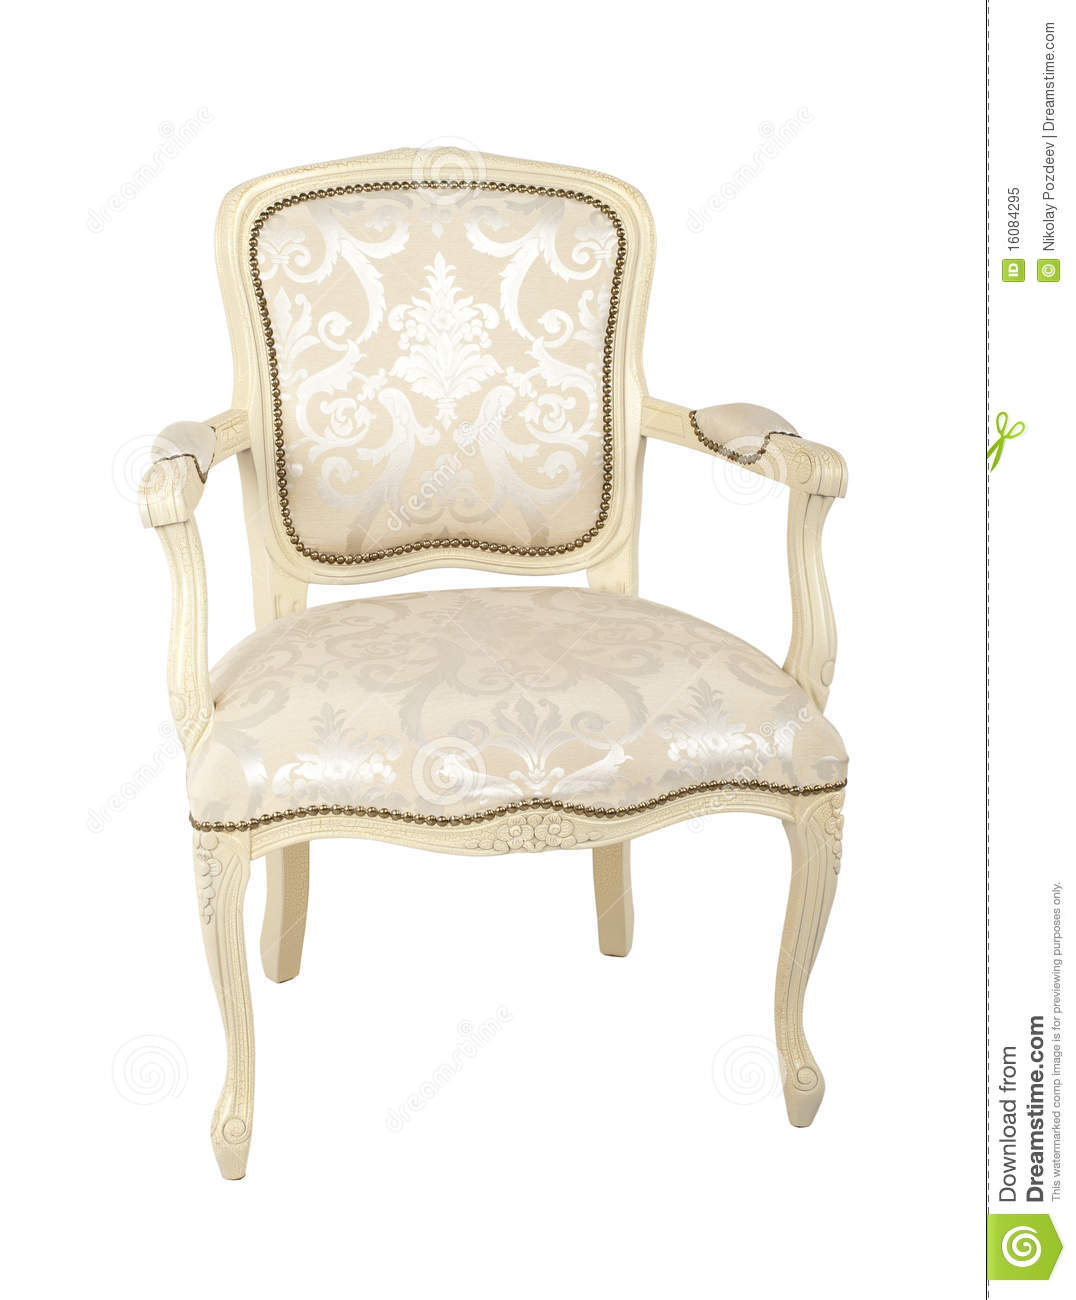 Luxury Armchair Isolated On White Stock Image - Image of ...